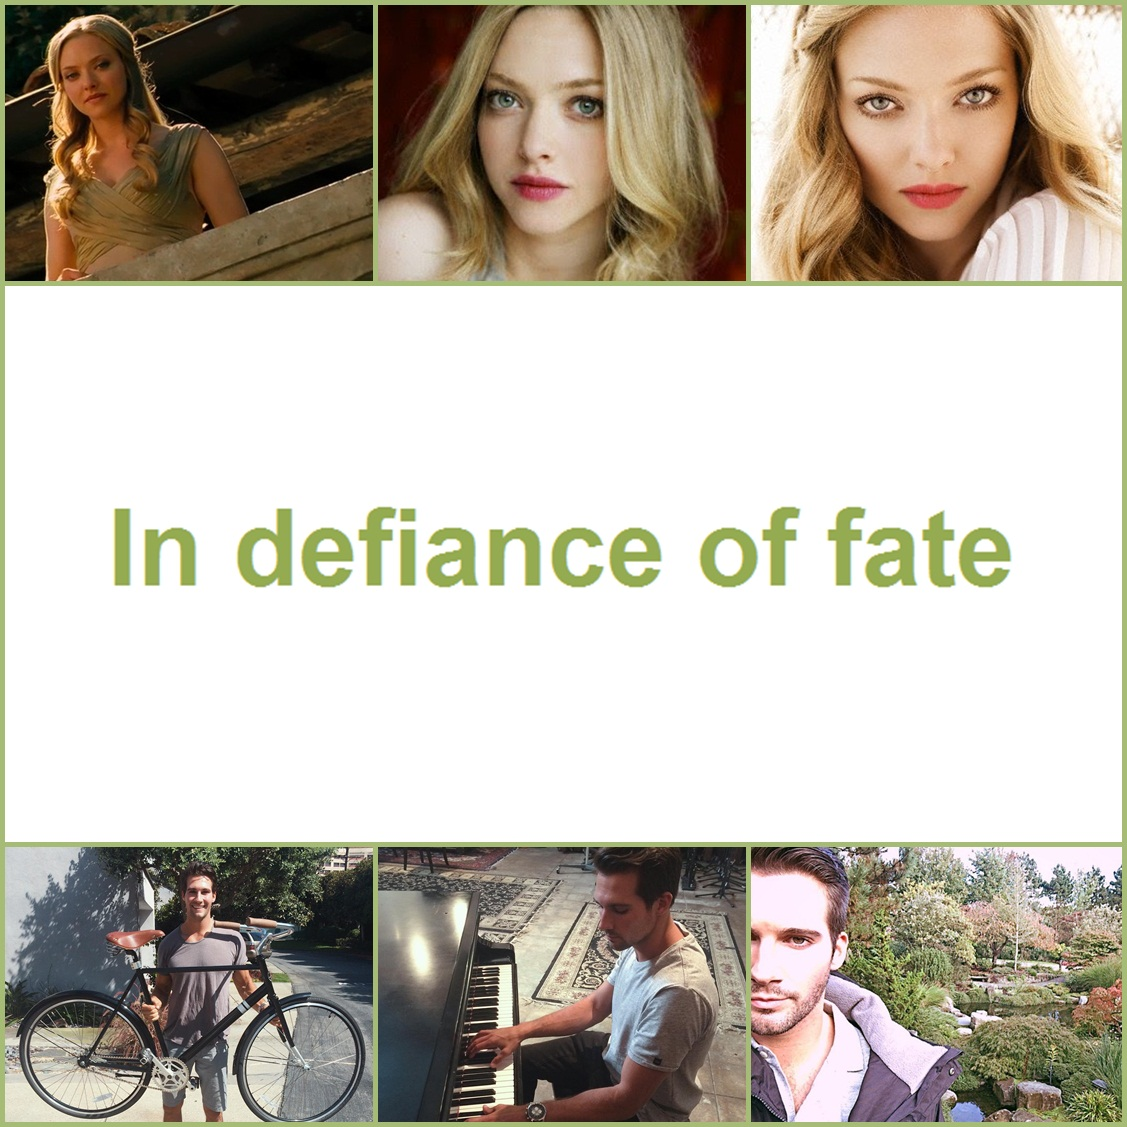 In defiance of fate